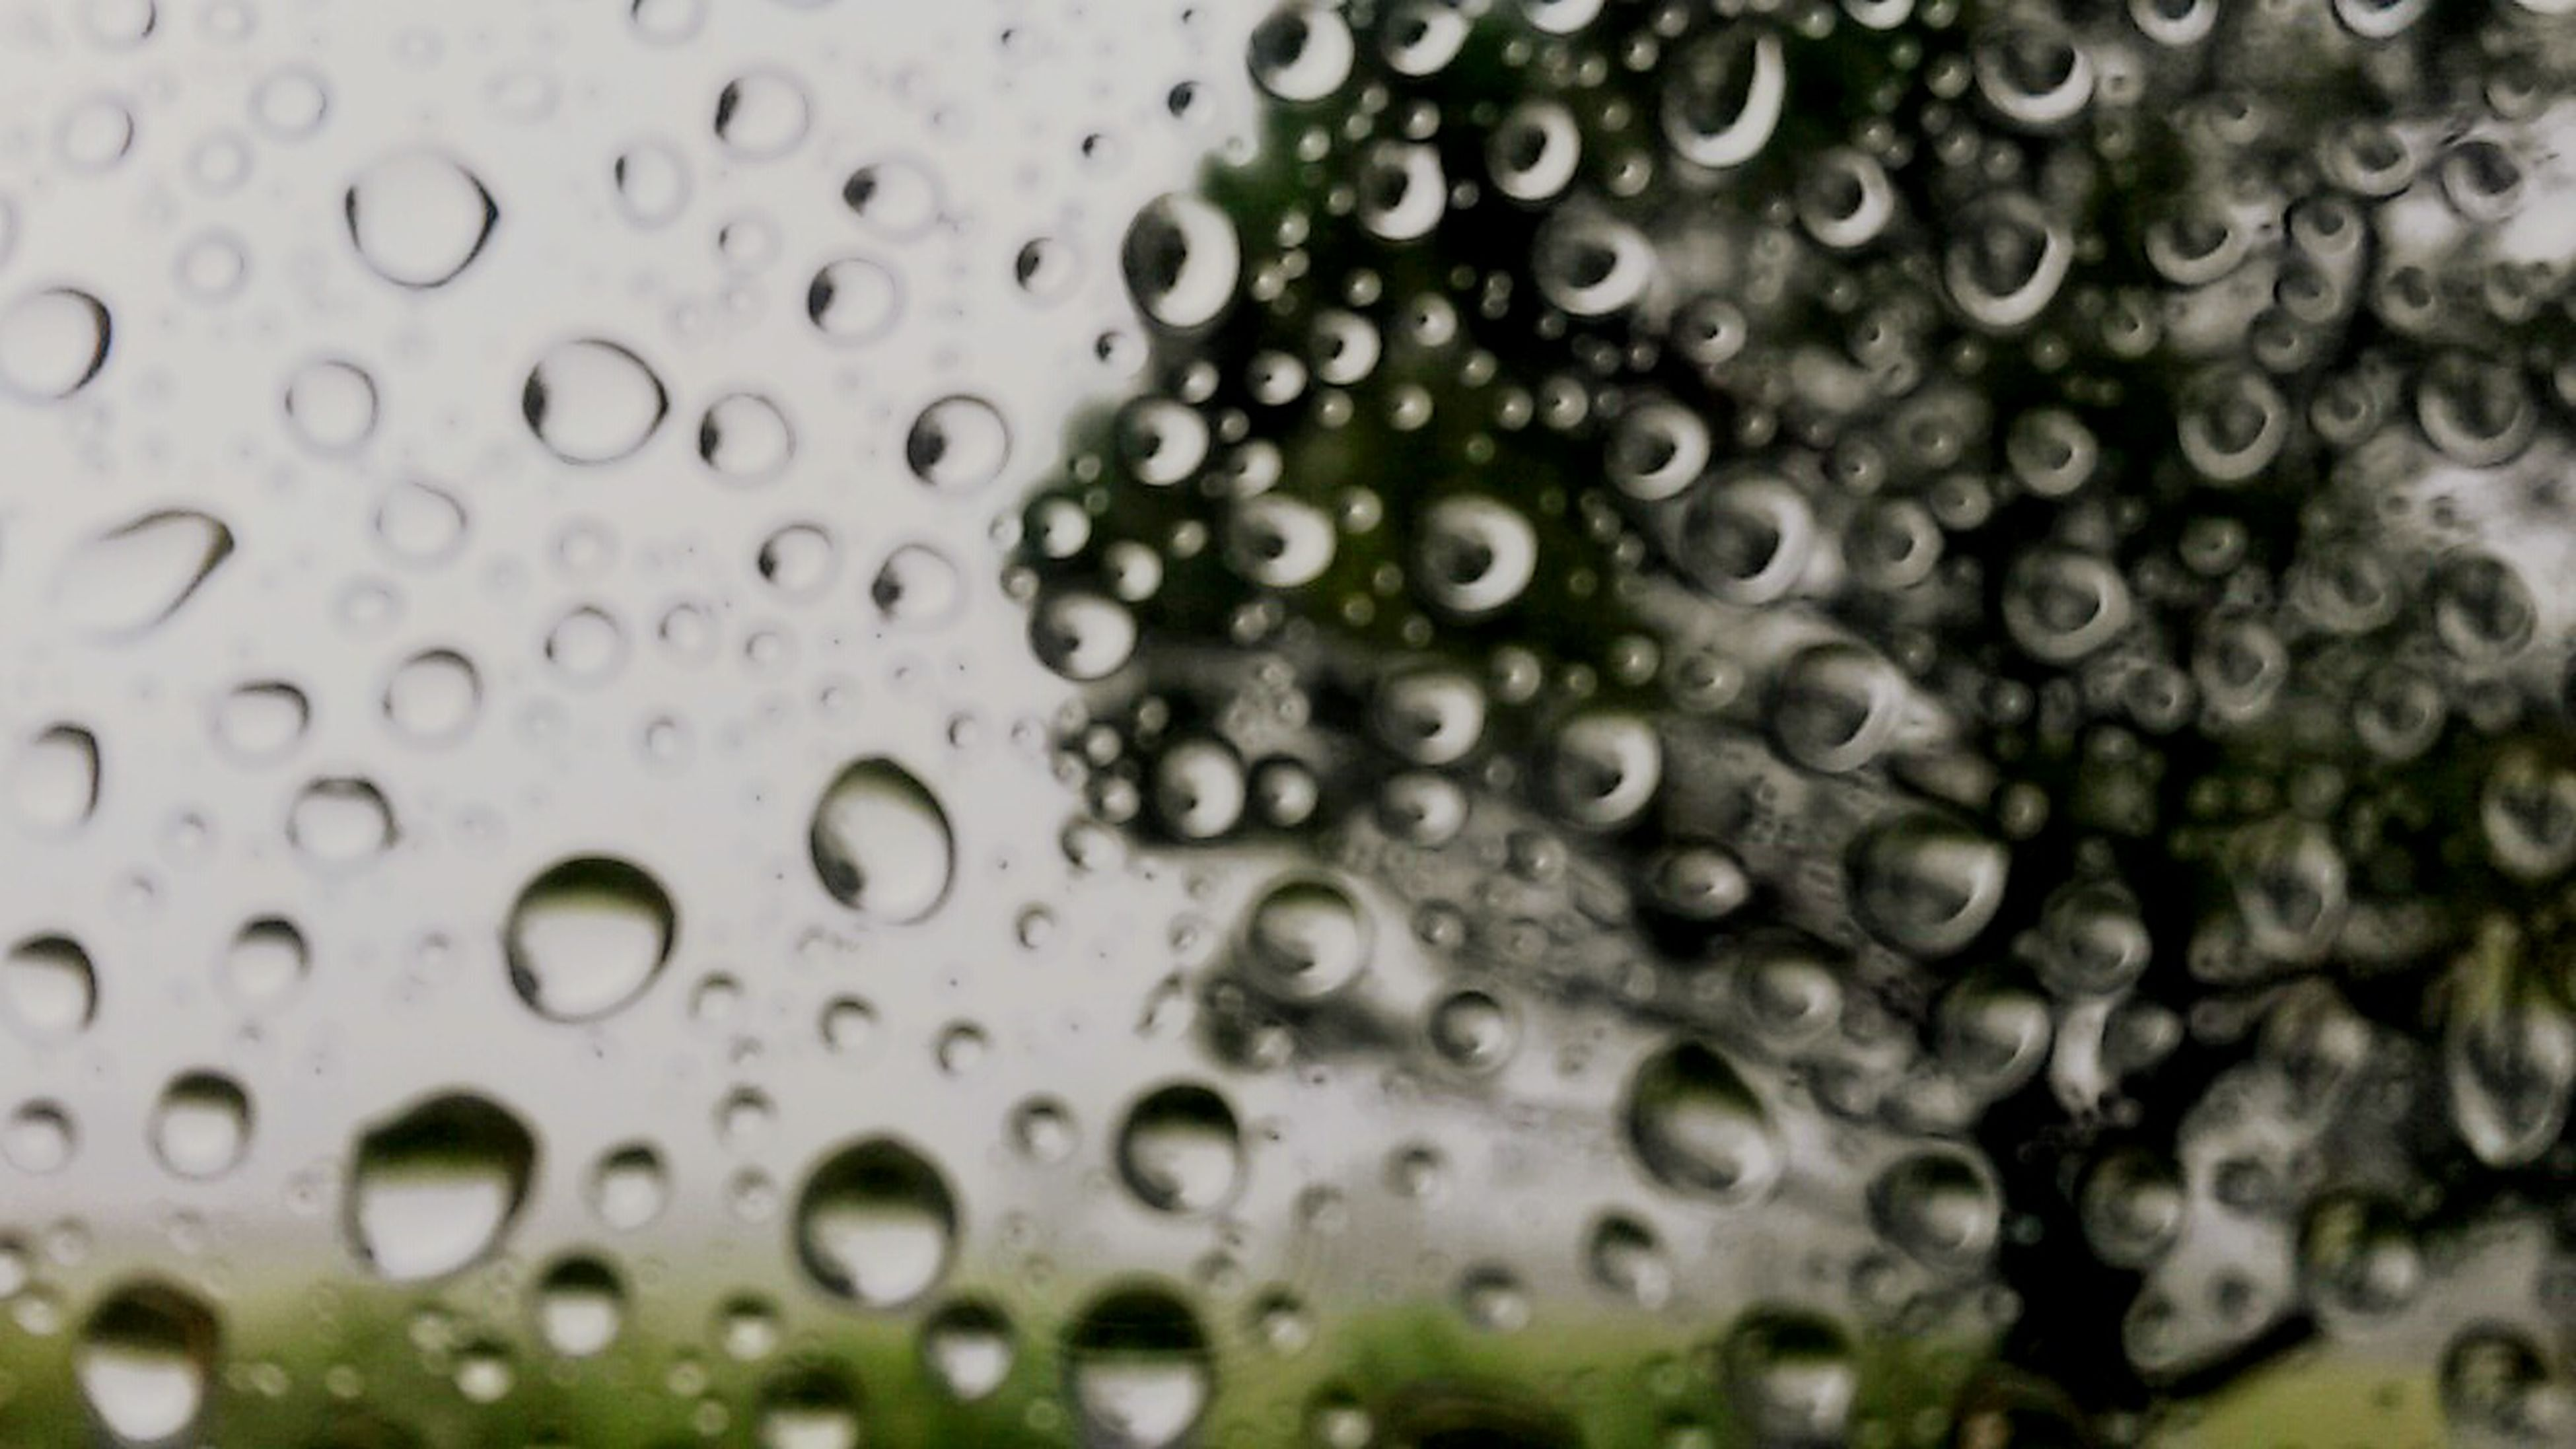 drop, wet, water, rain, full frame, backgrounds, transparent, raindrop, window, glass - material, close-up, focus on foreground, weather, indoors, freshness, water drop, droplet, nature, glass, season